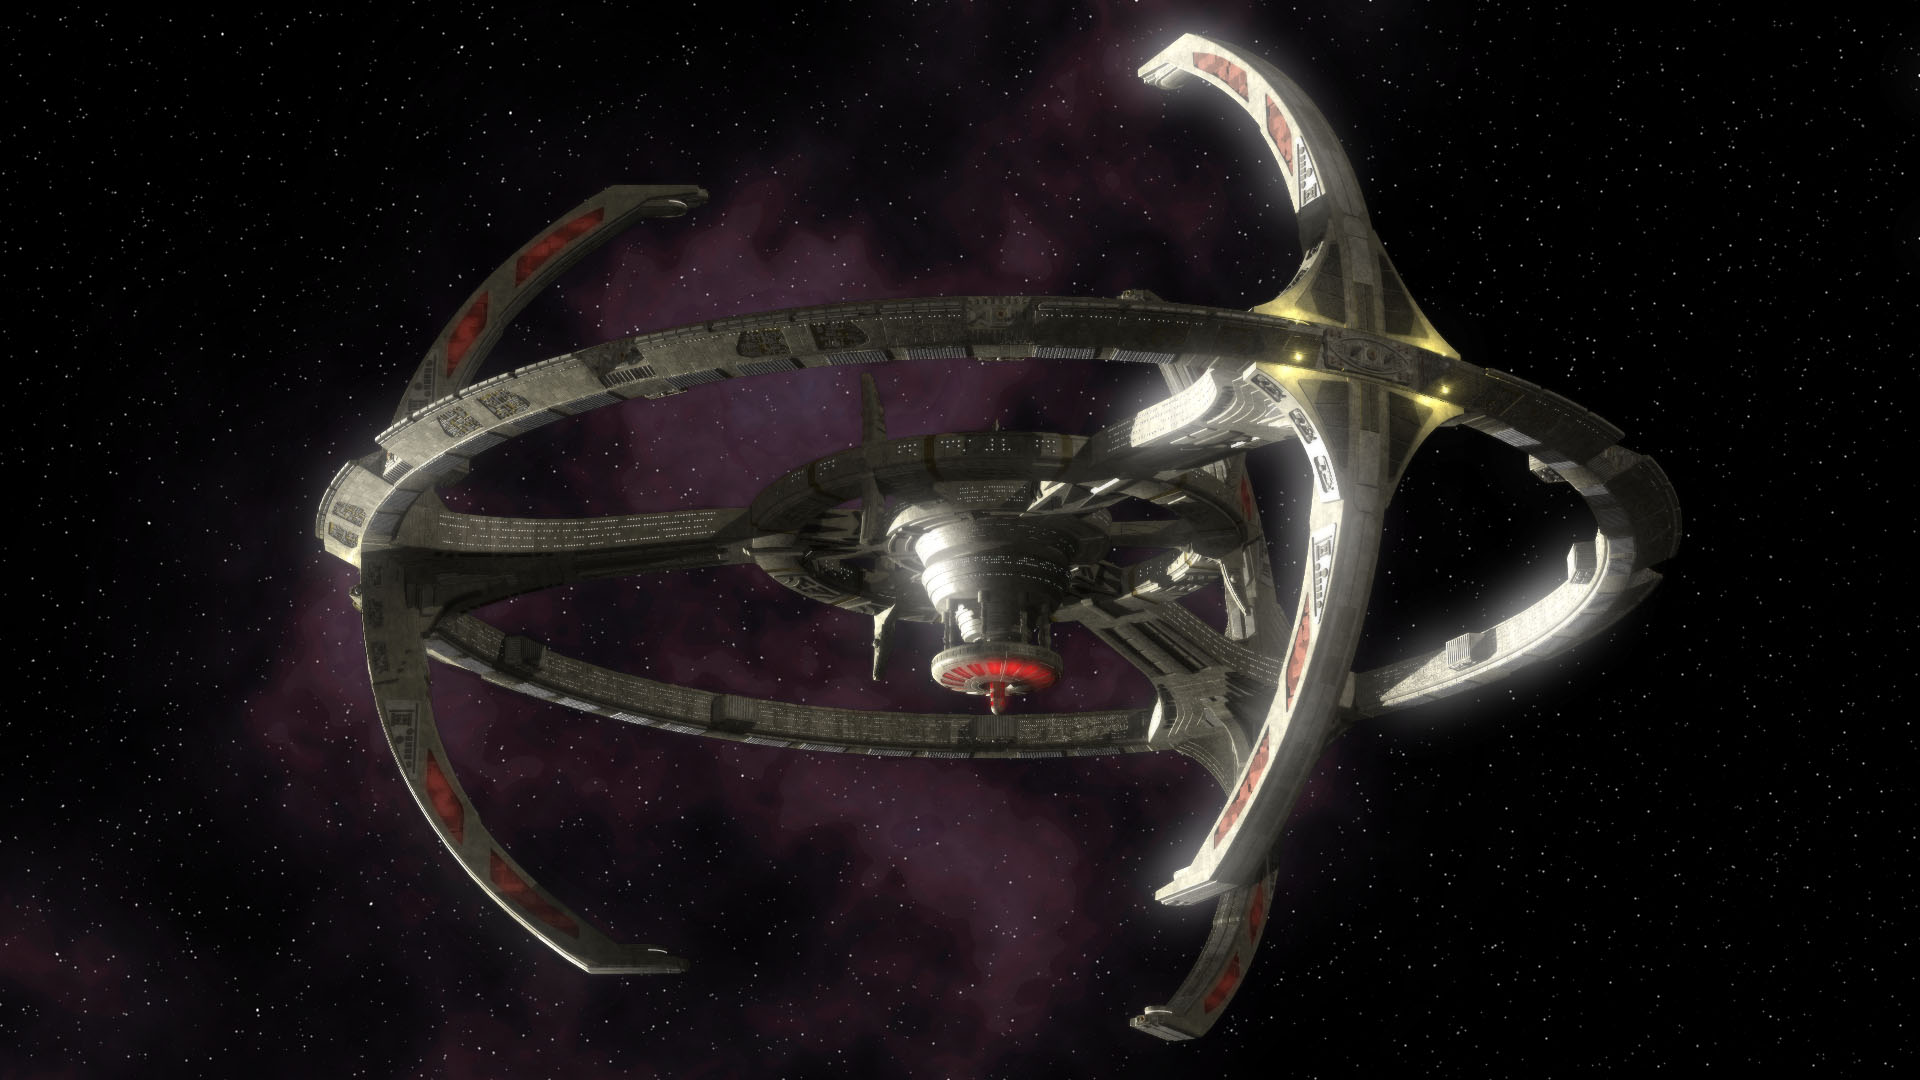 star trek deep space nine Computer Wallpapers Desktop Backgrounds 1920x1080